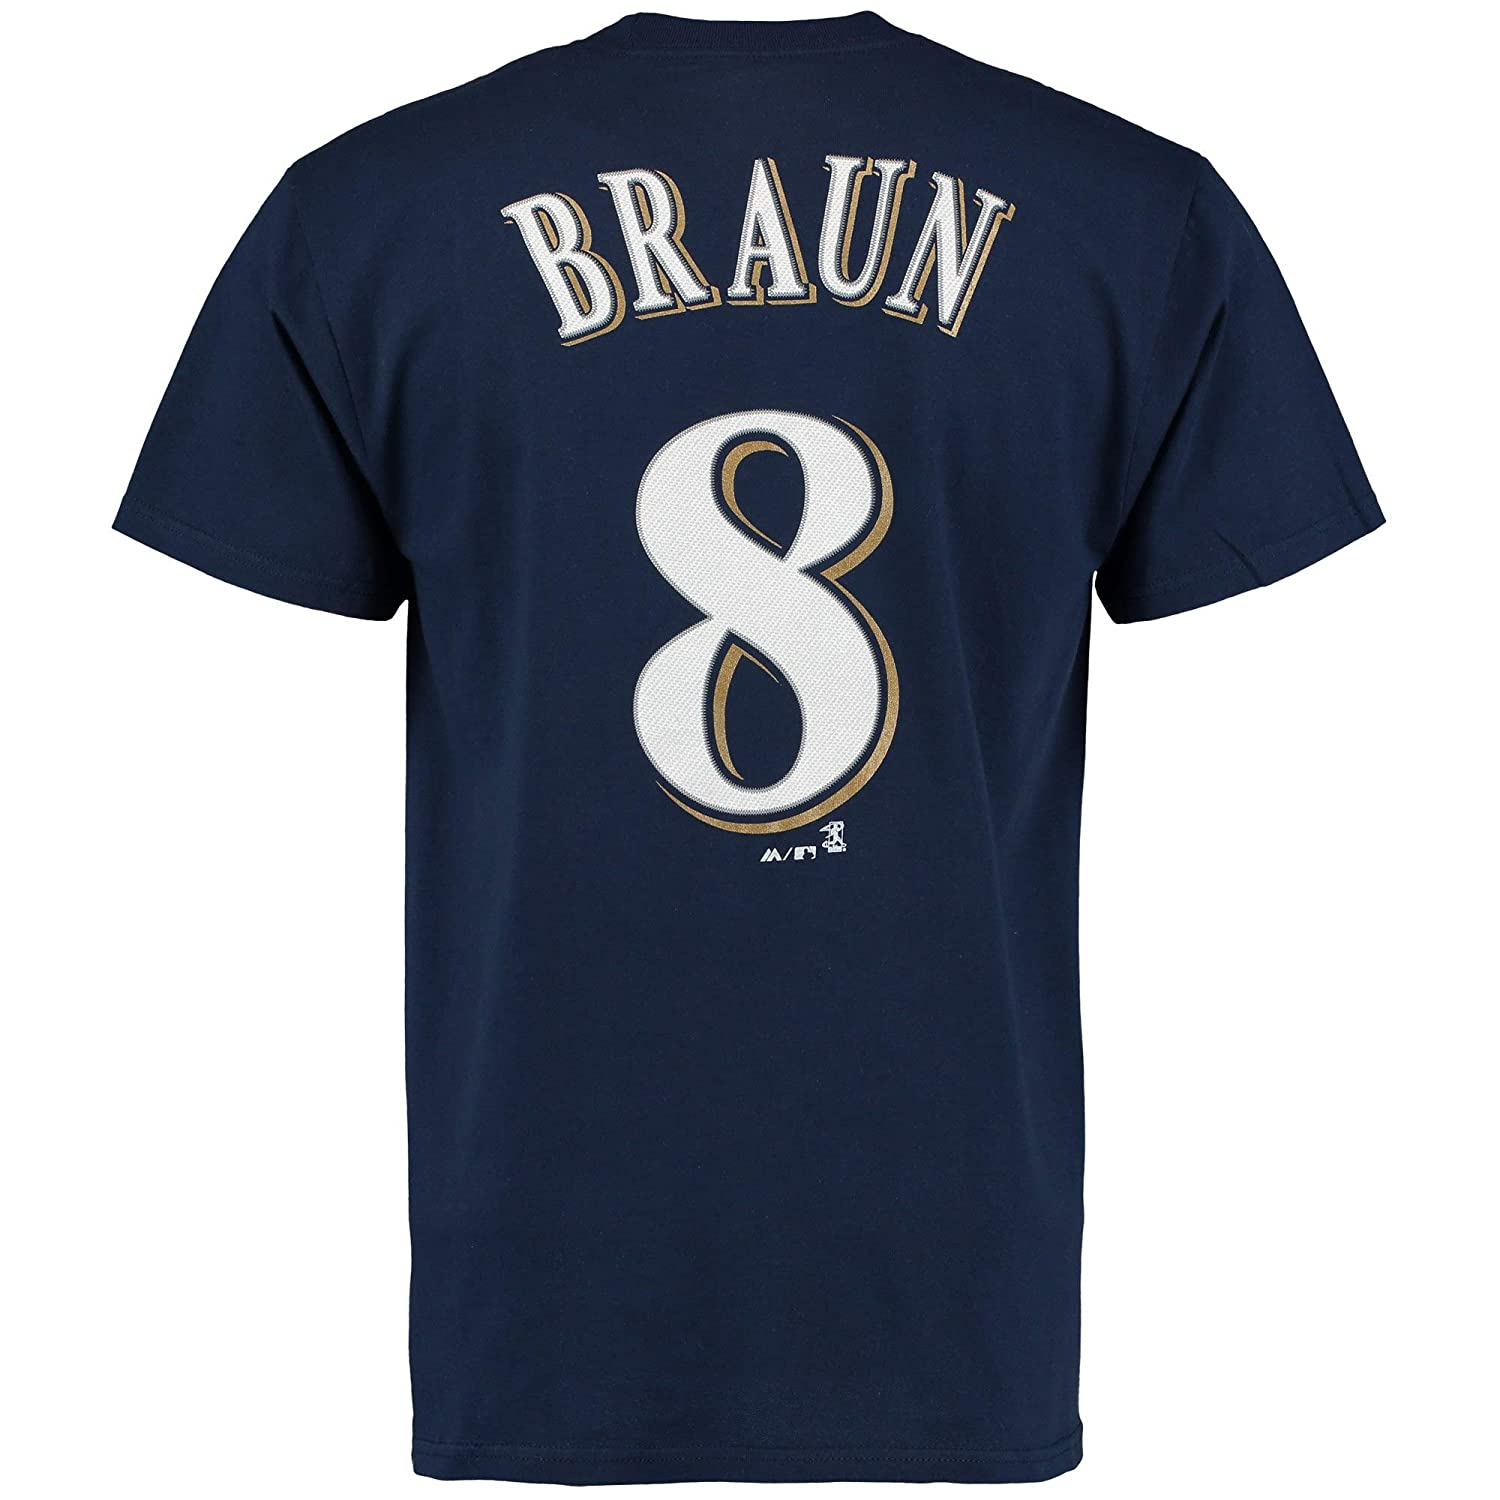 Outerstuff Ryan Braun Milwaukee Brewers #8 Navy Youth Name and Number T-Shirt